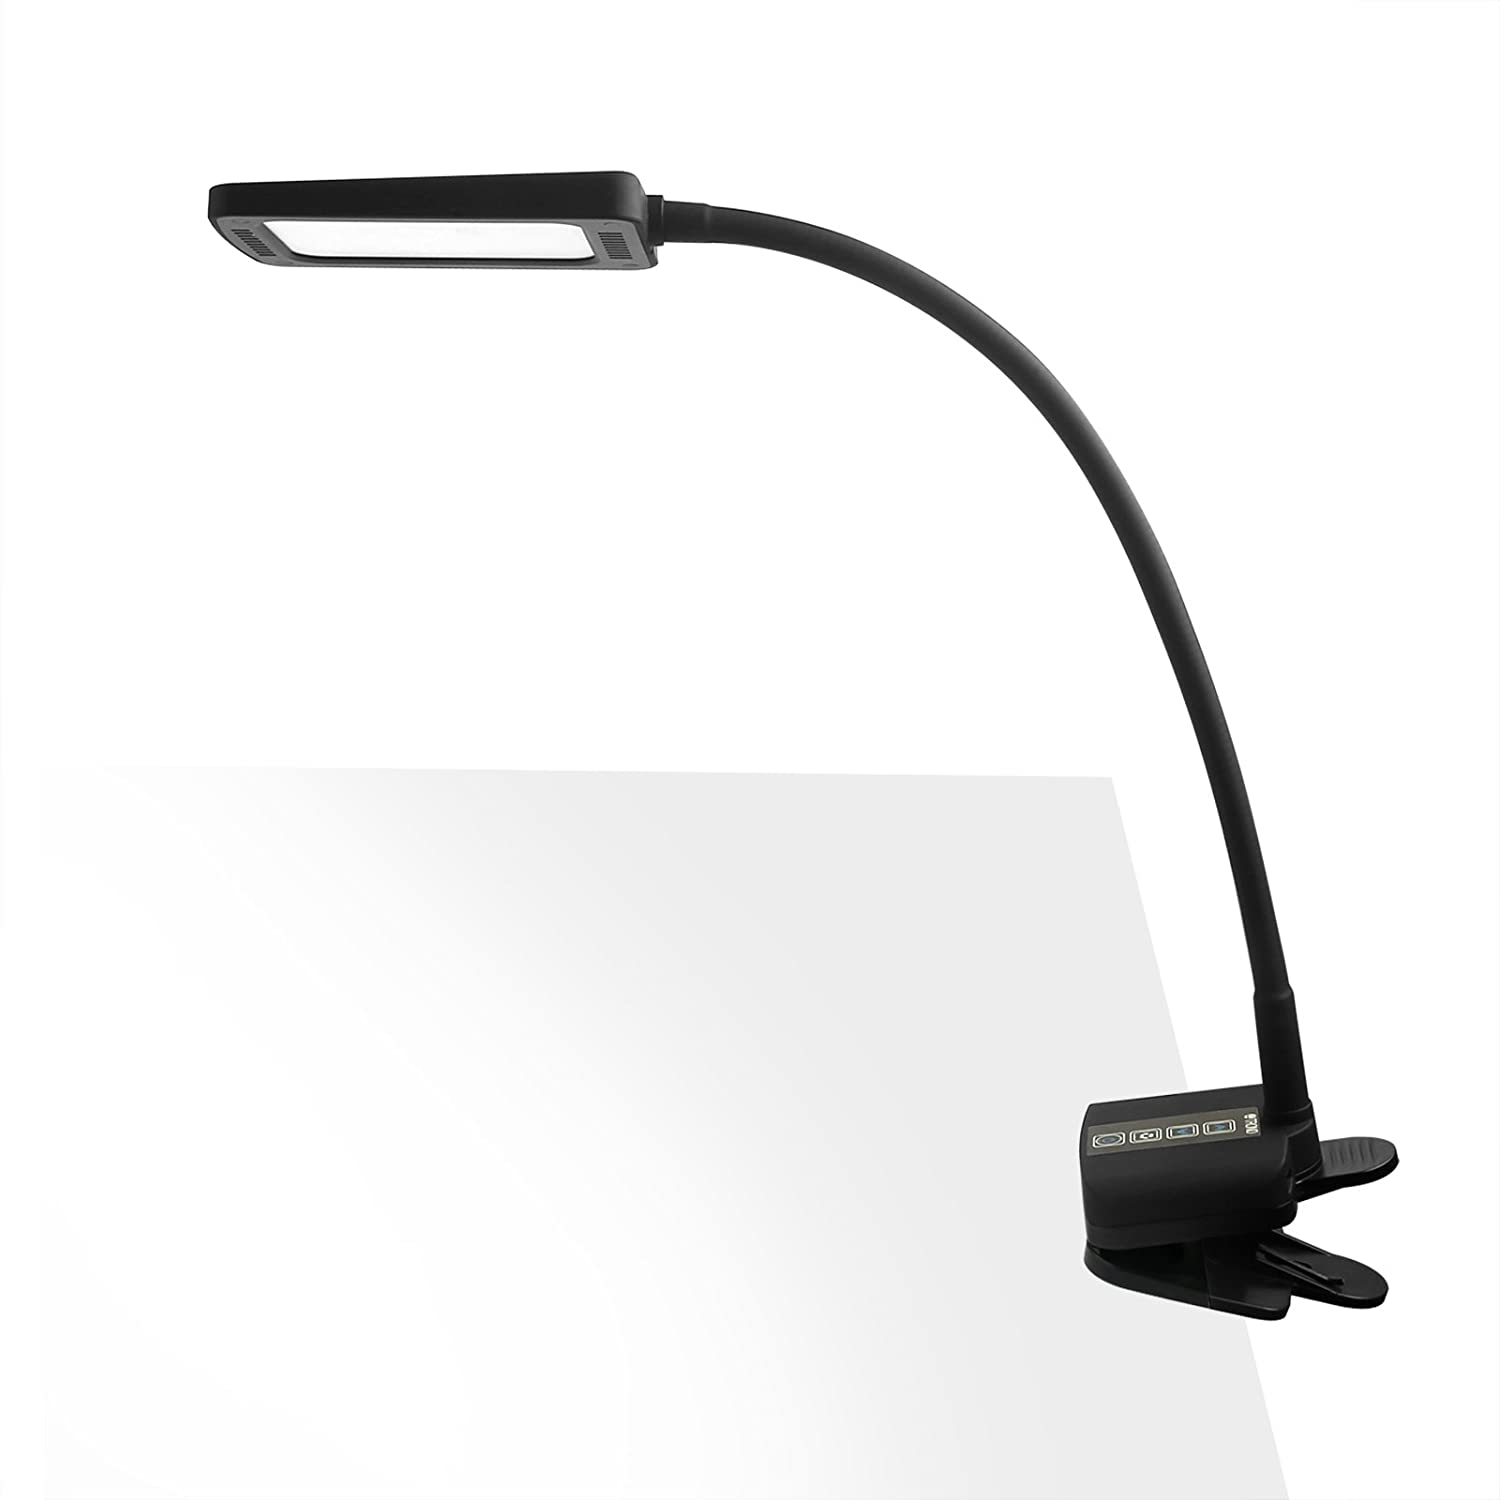 TROND Halo C Task Lamp, Eye-Care LED Clamp Table Light (11W, 5 Adjustable Color Temperatures, 5-Level Dimmer, 30-Minute Timer, USB Charging Port, Flexible Gooseneck, Flicker-Free), Black Halo 11W-C